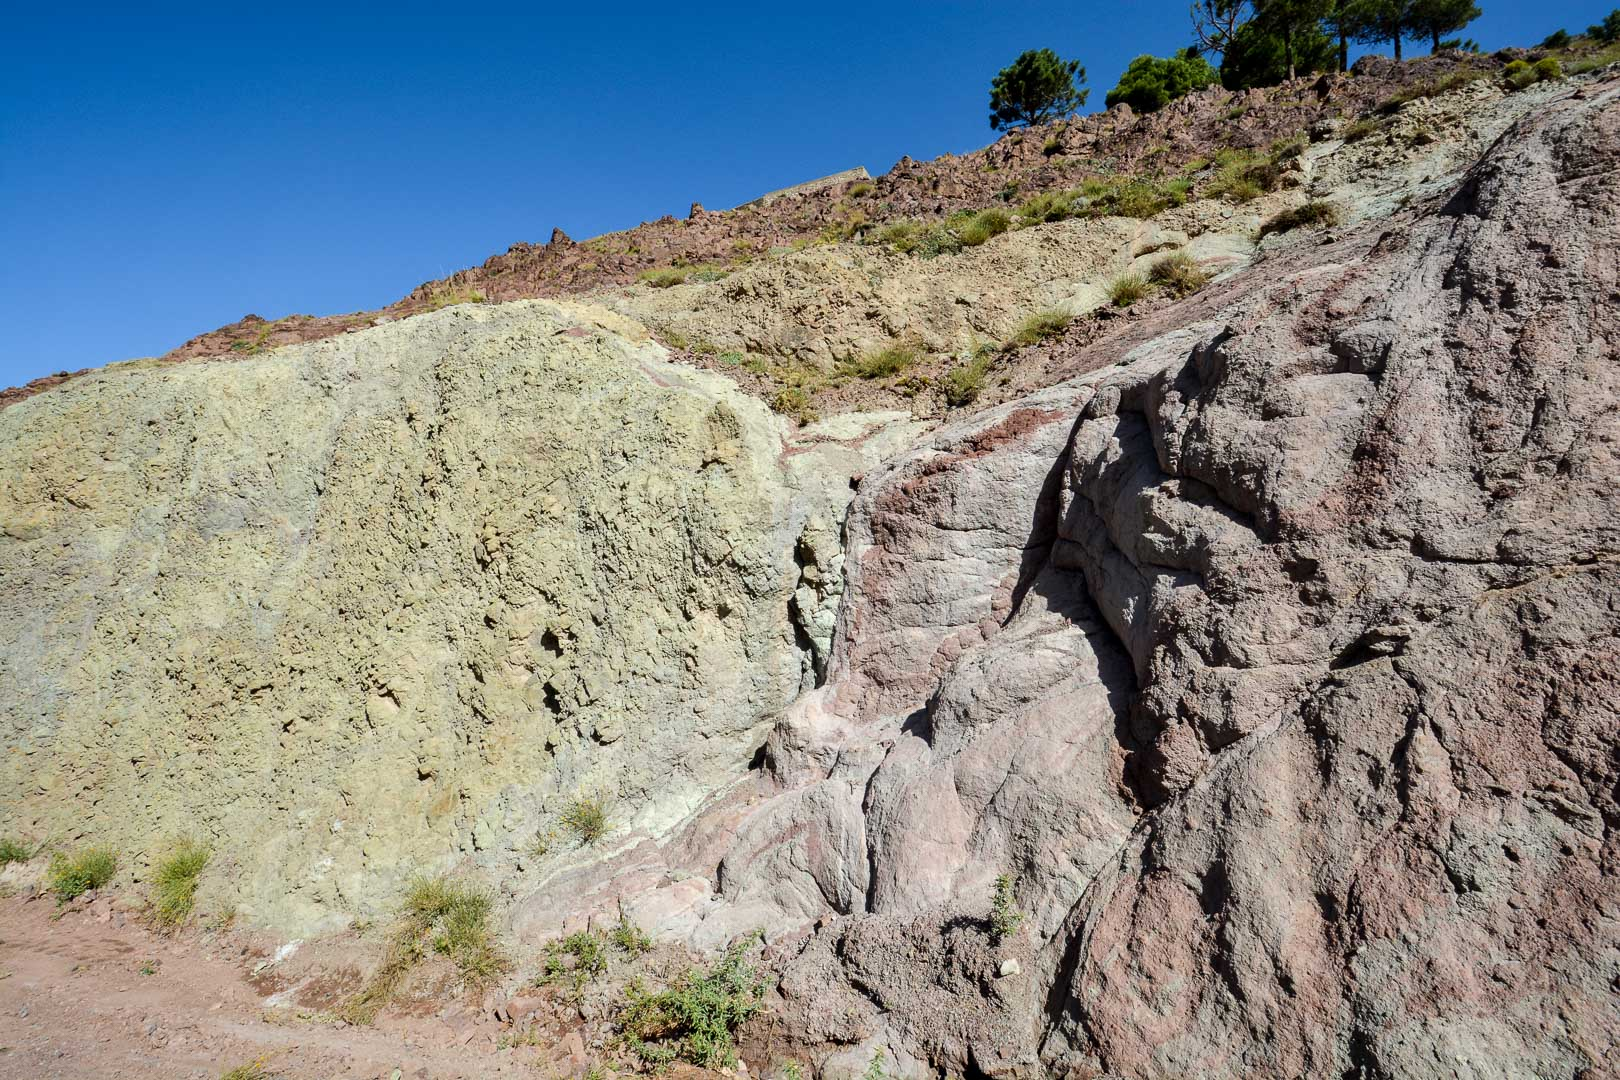 The greenish yellow rock is actually copper!